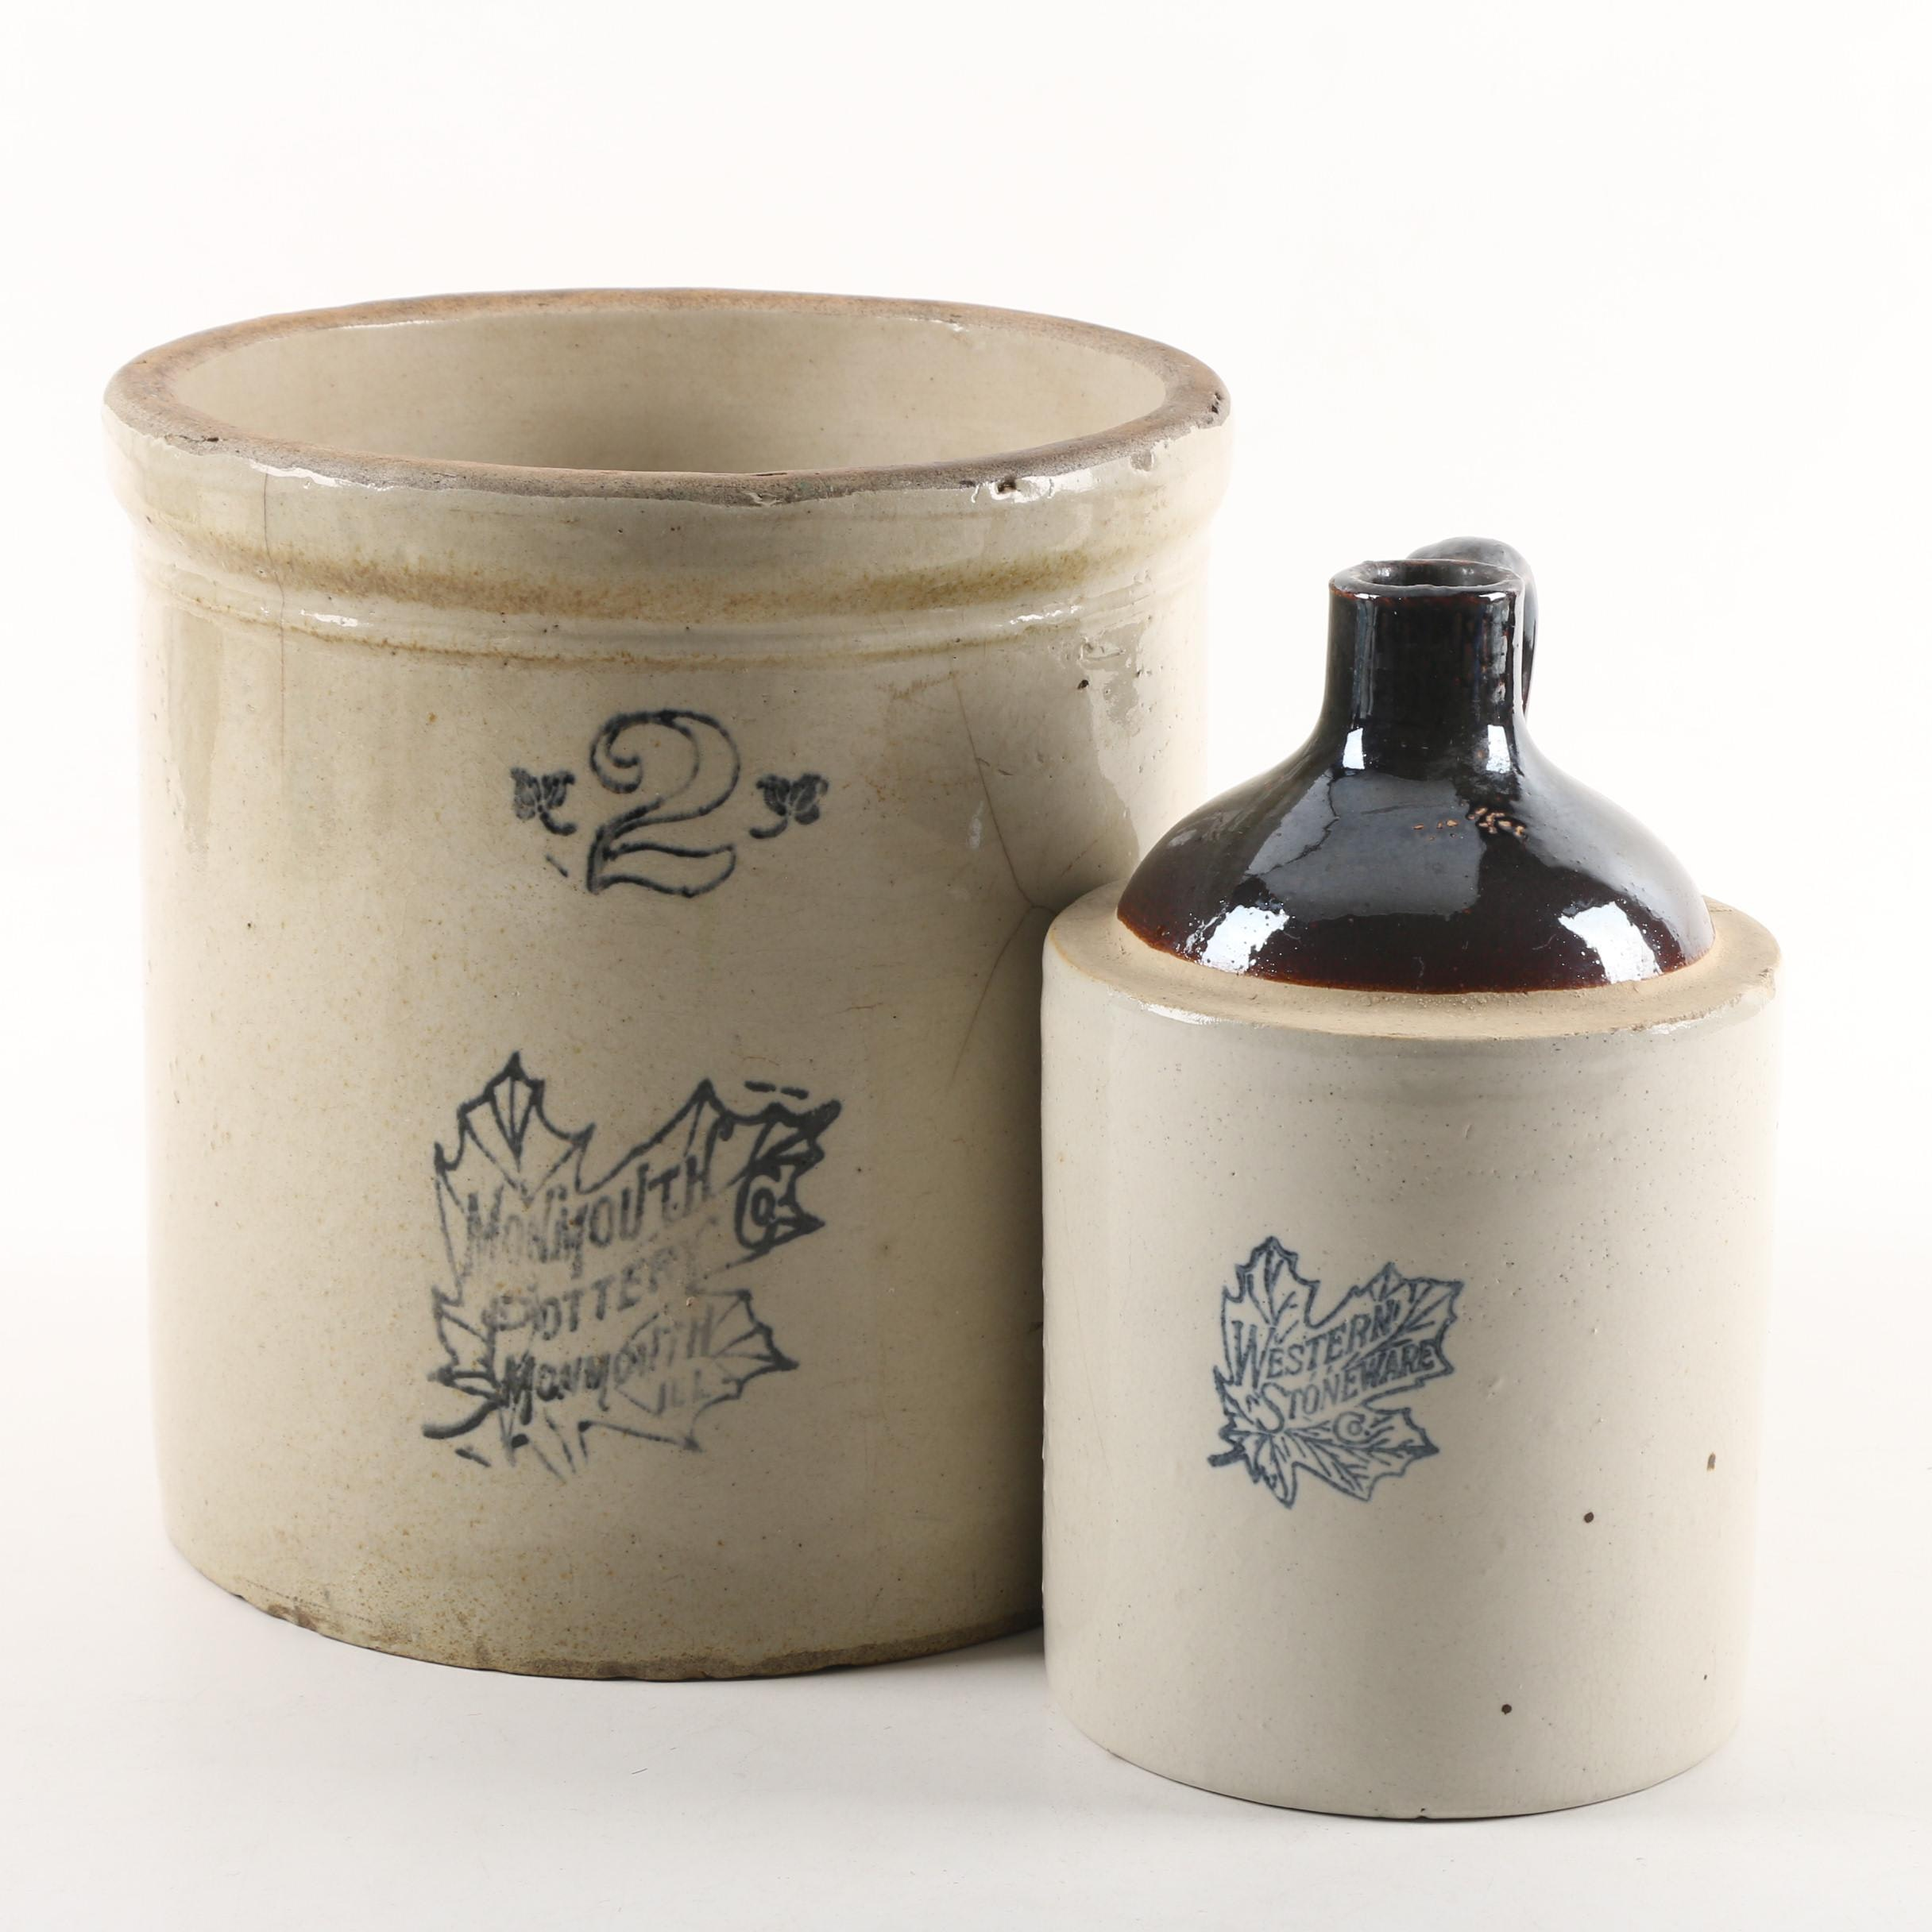 Vintage Monmouth Pottery 2-Gallon Crock with Western Stoneware Jug